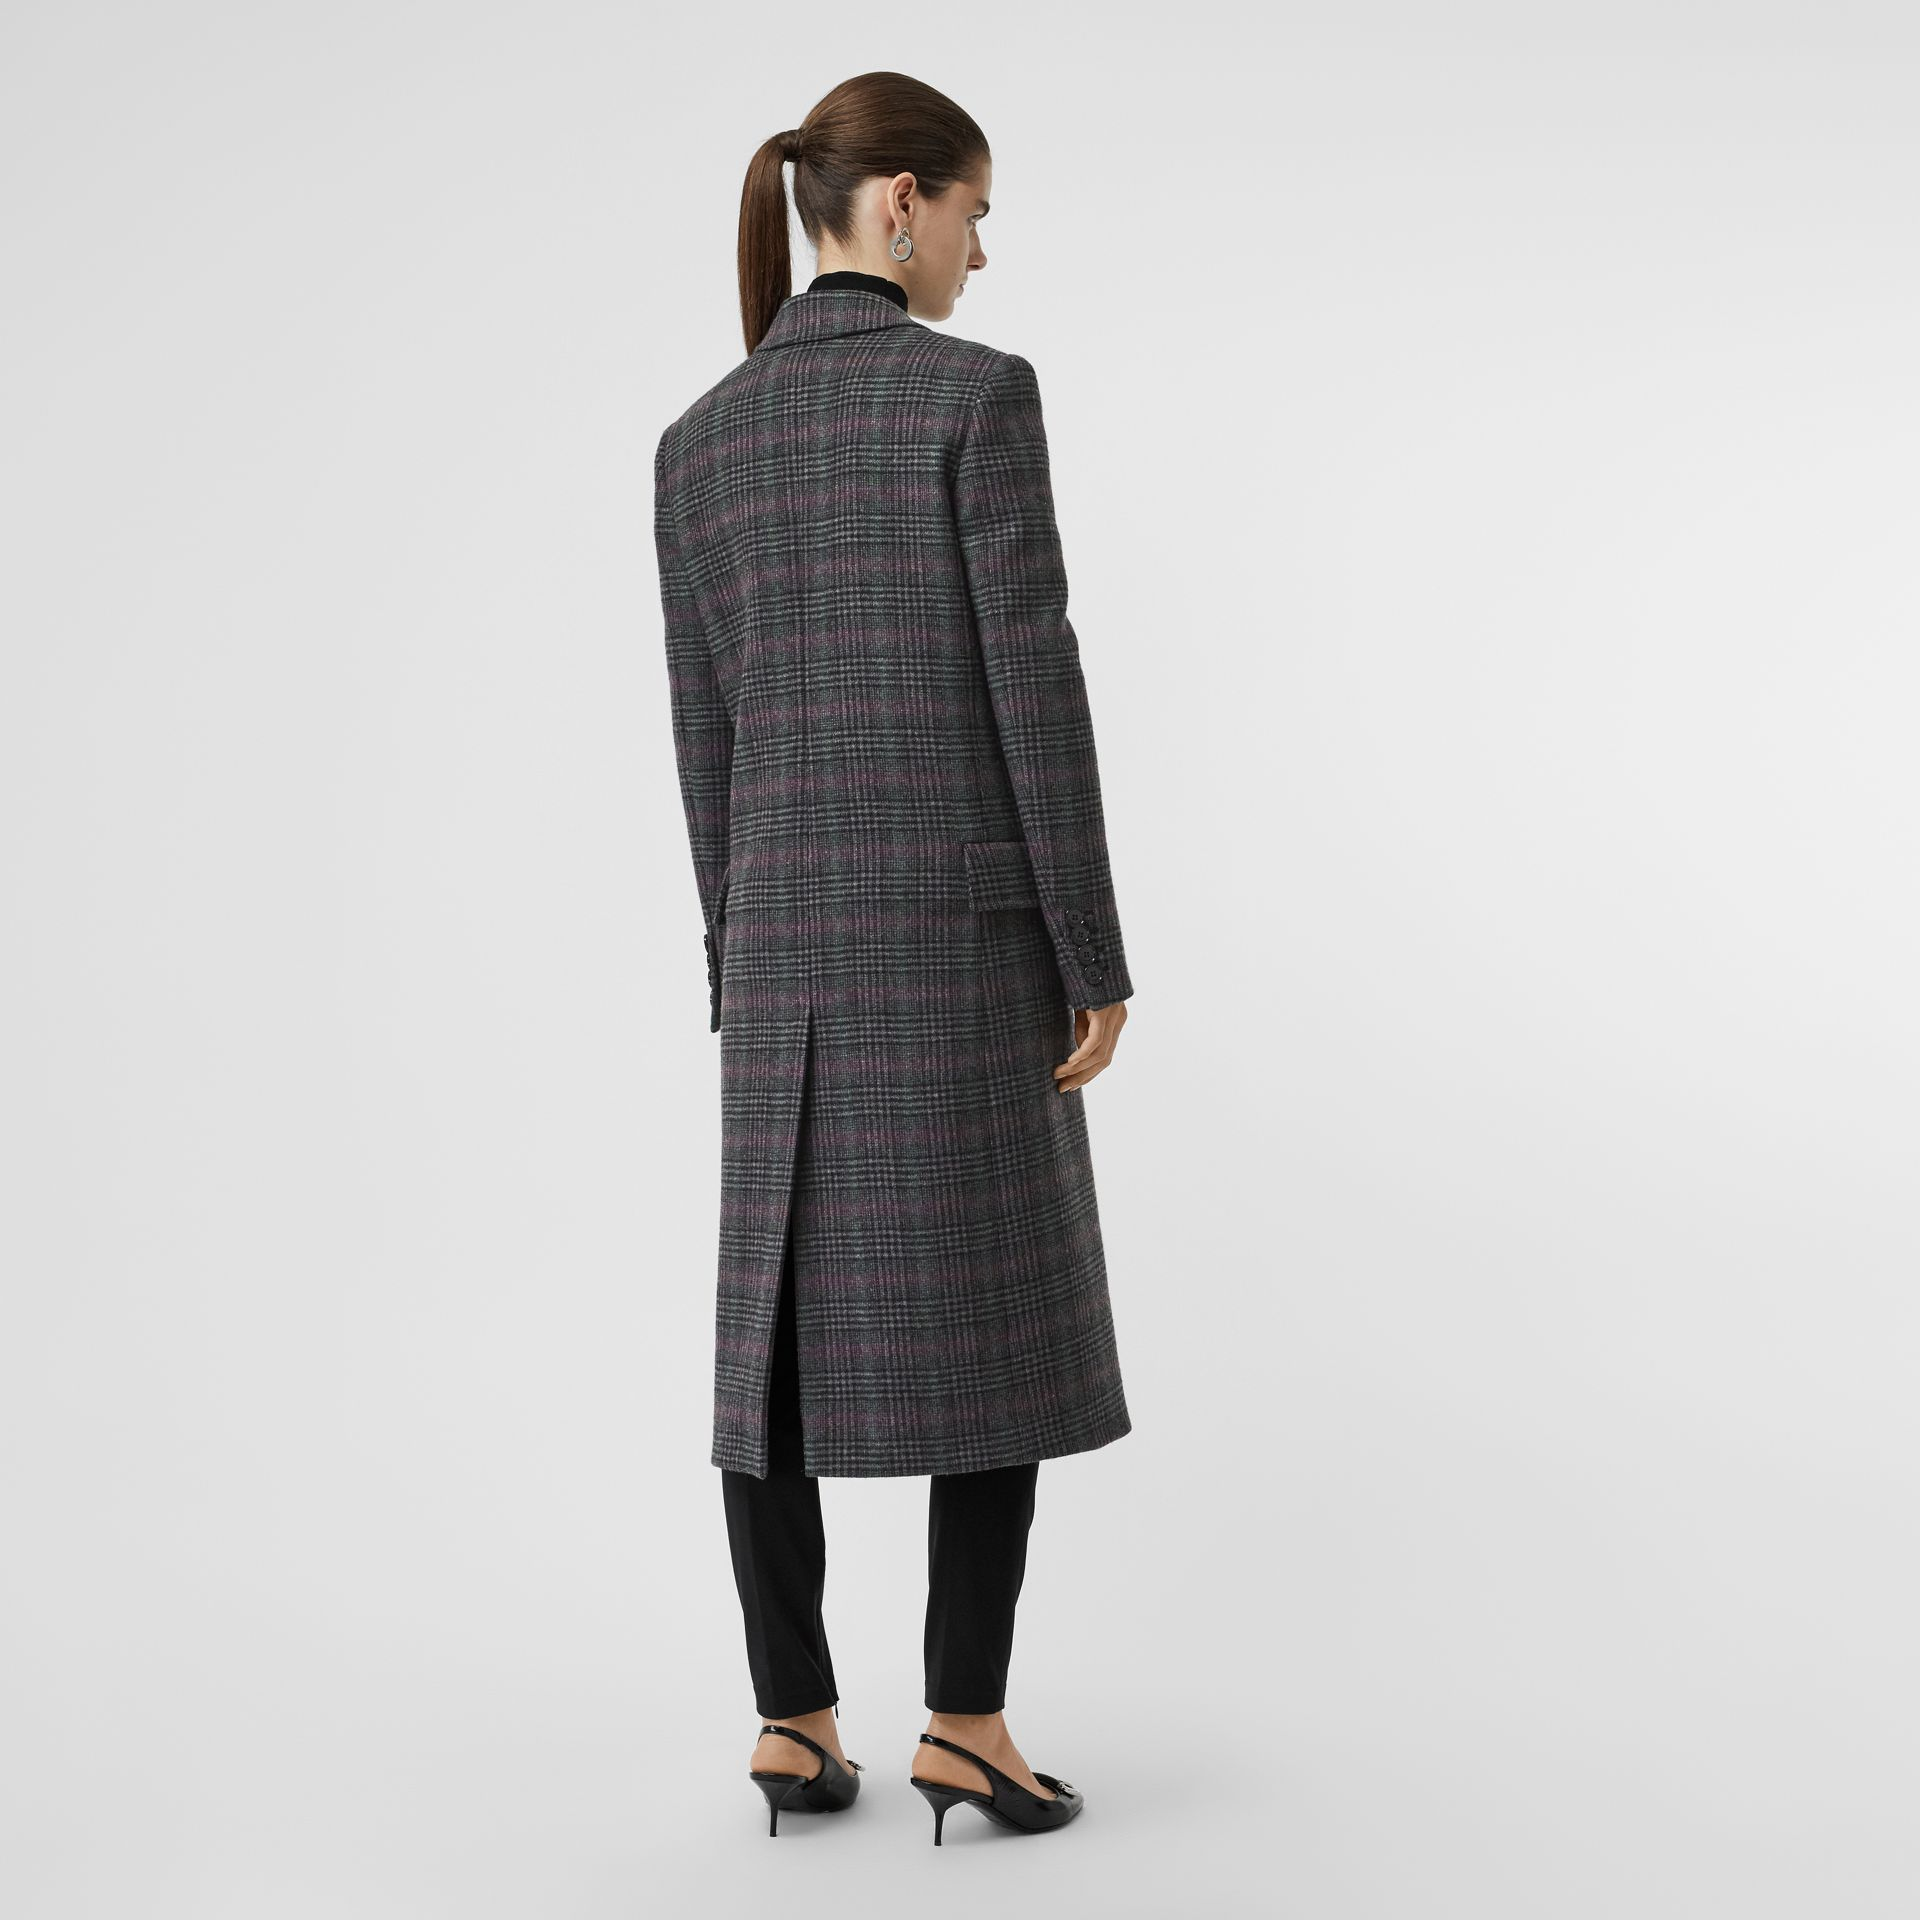 Prince of Wales Check Wool Tailored Coat in Charcoal - Women | Burberry United Kingdom - gallery image 2